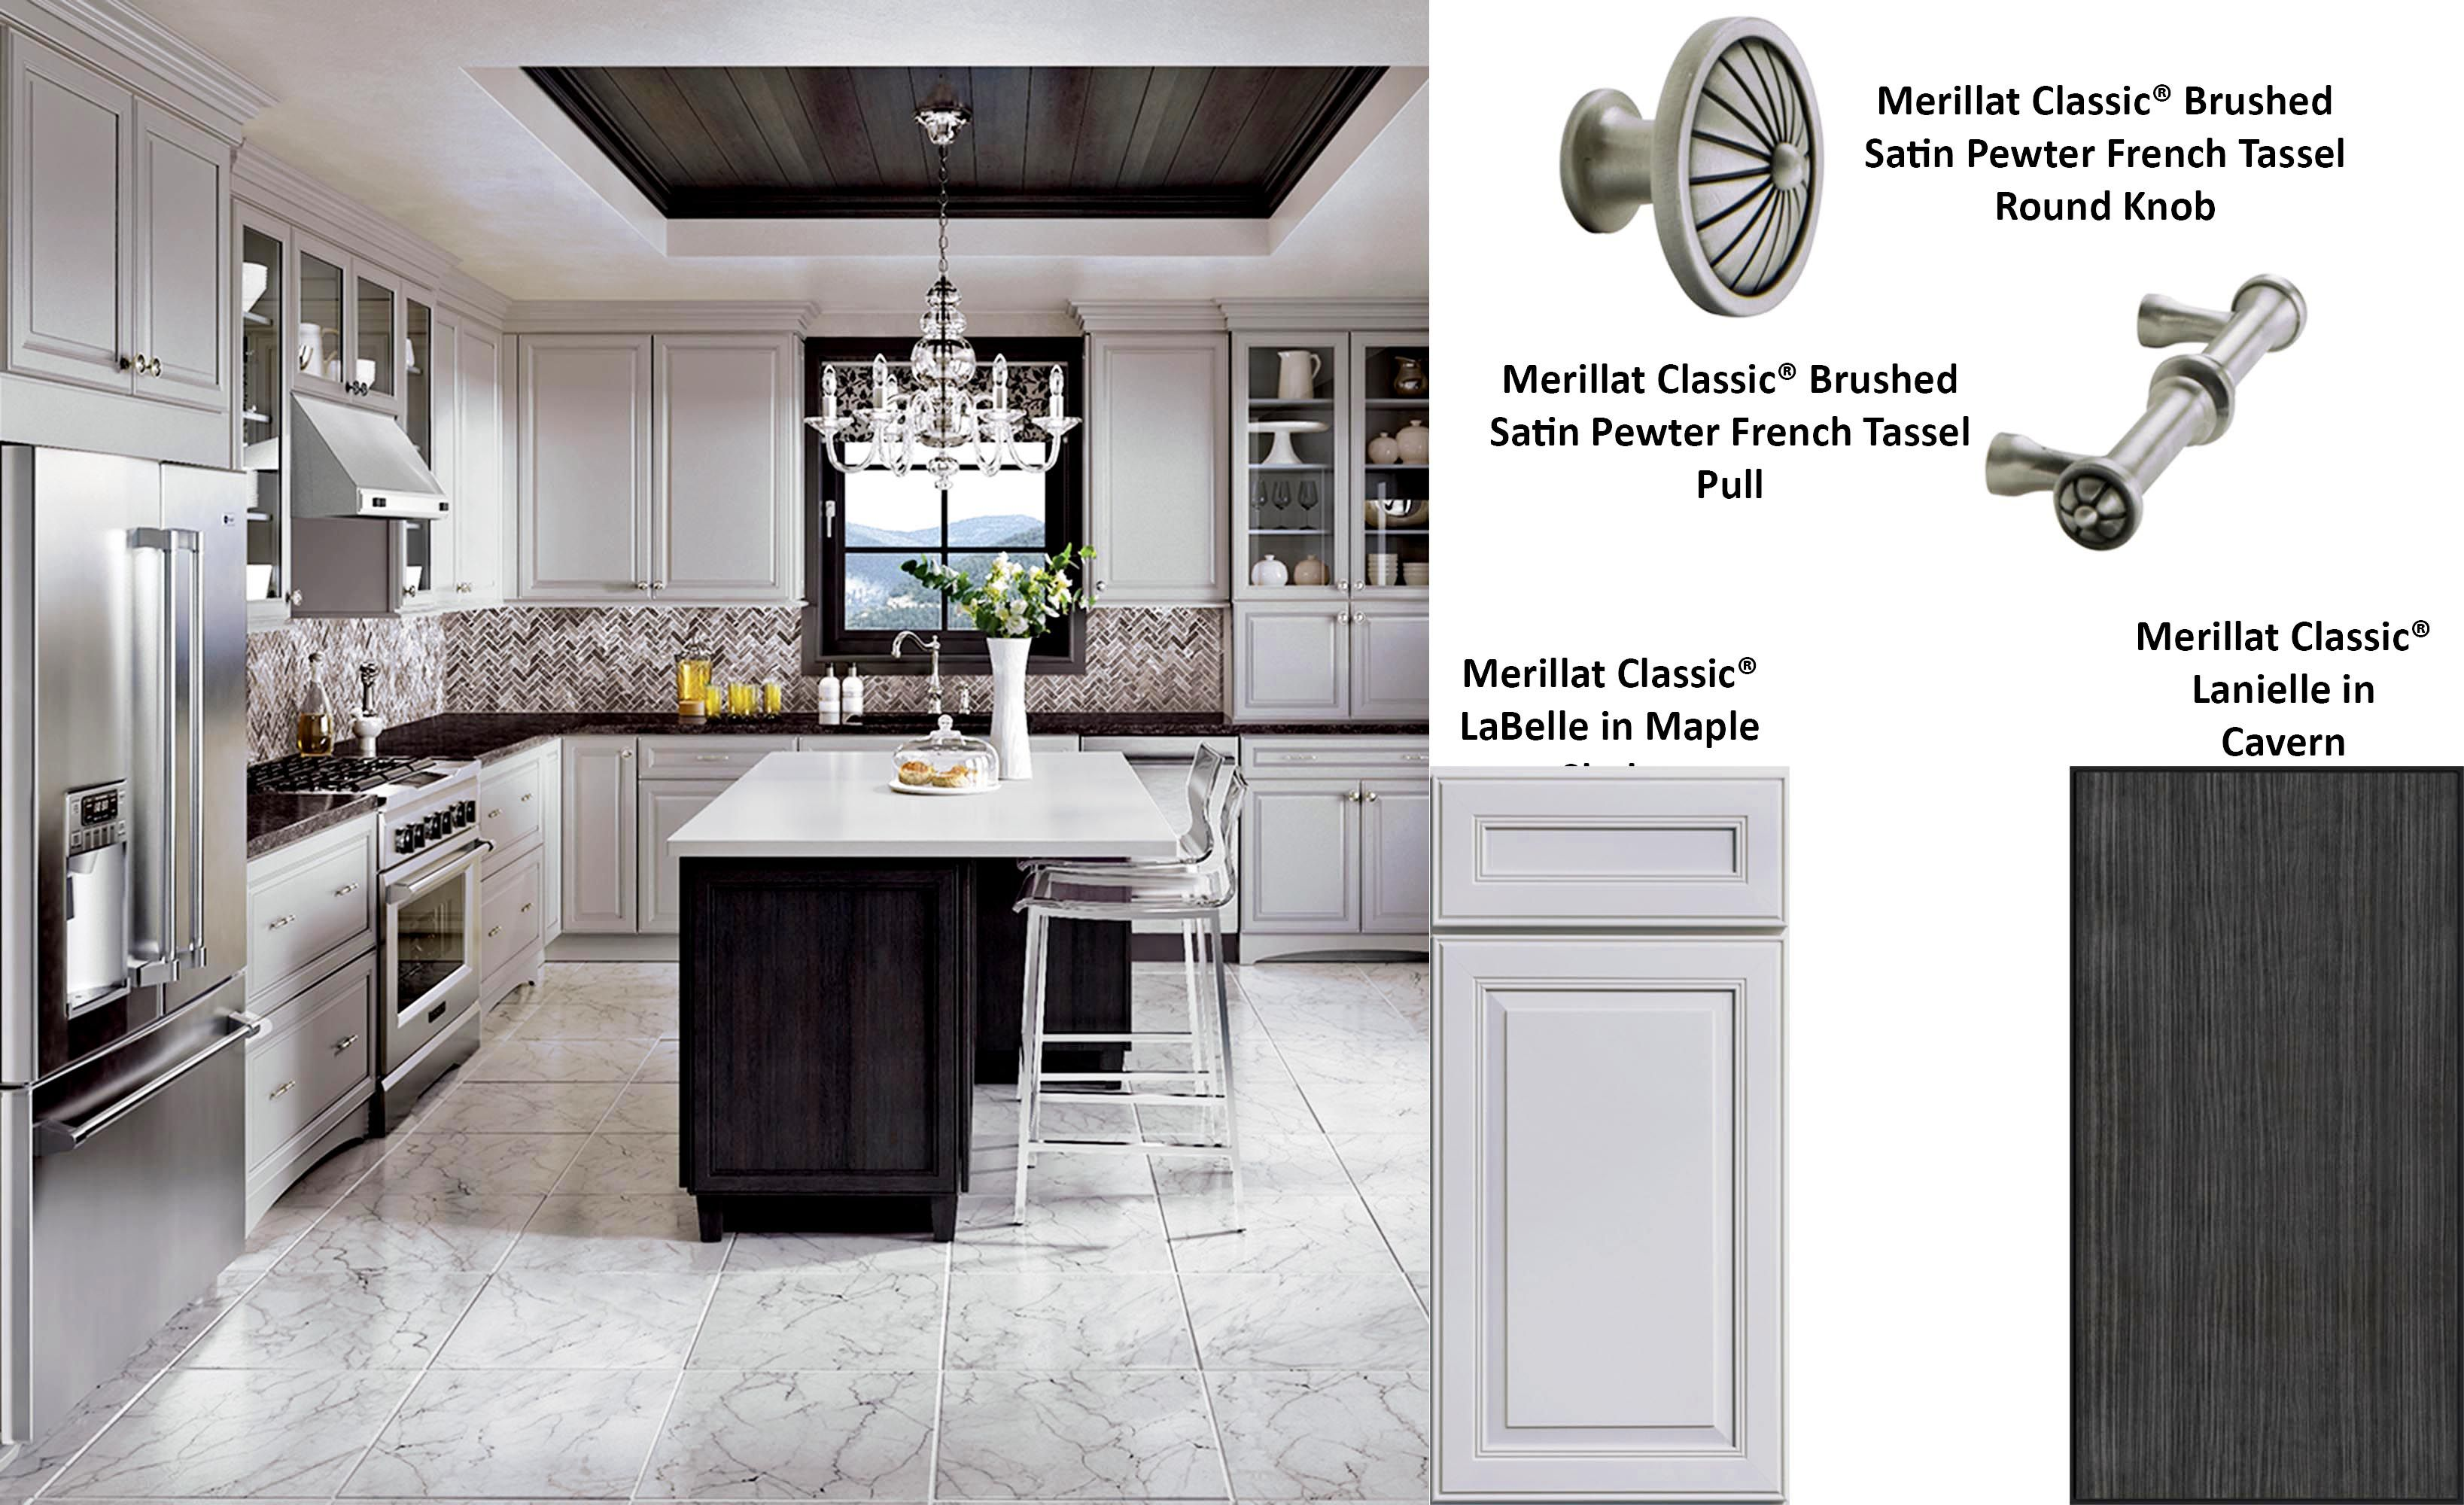 merillat classic labelle in maple shale - Merillat Classic Kitchen Cabinets